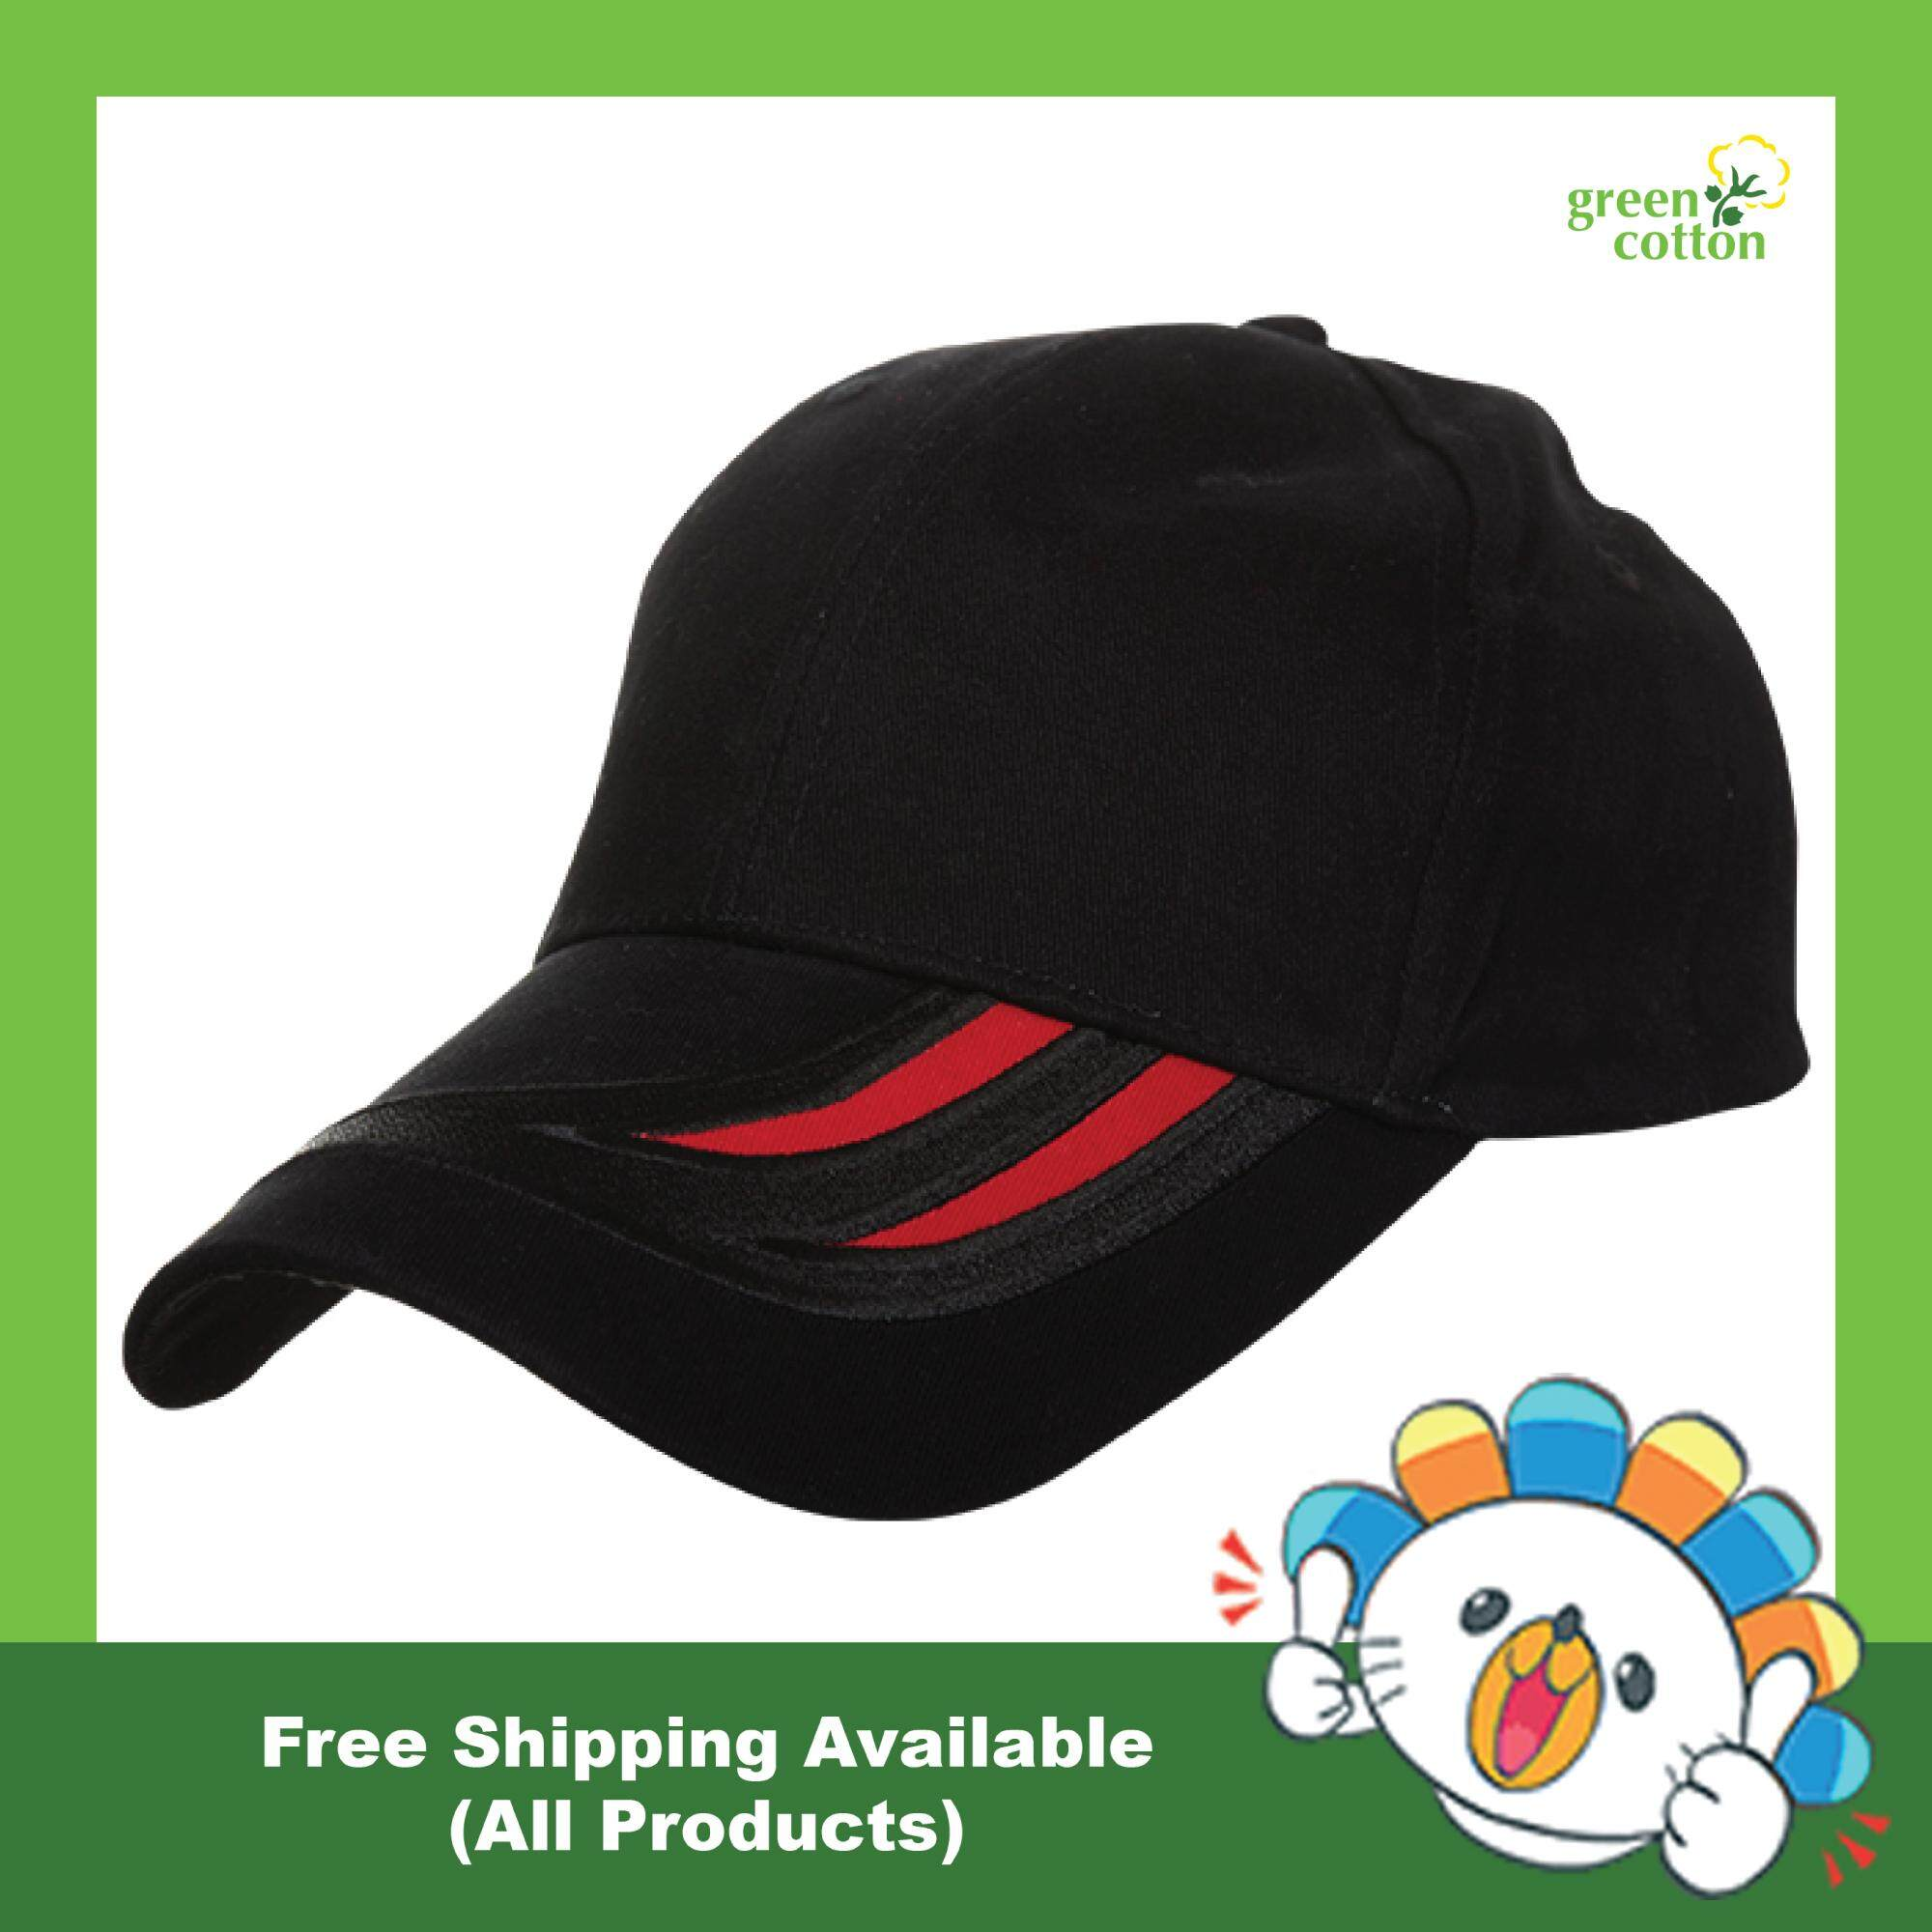 785ce8f0e16da Men s Hats - Buy Men s Hats at Best Price in Malaysia